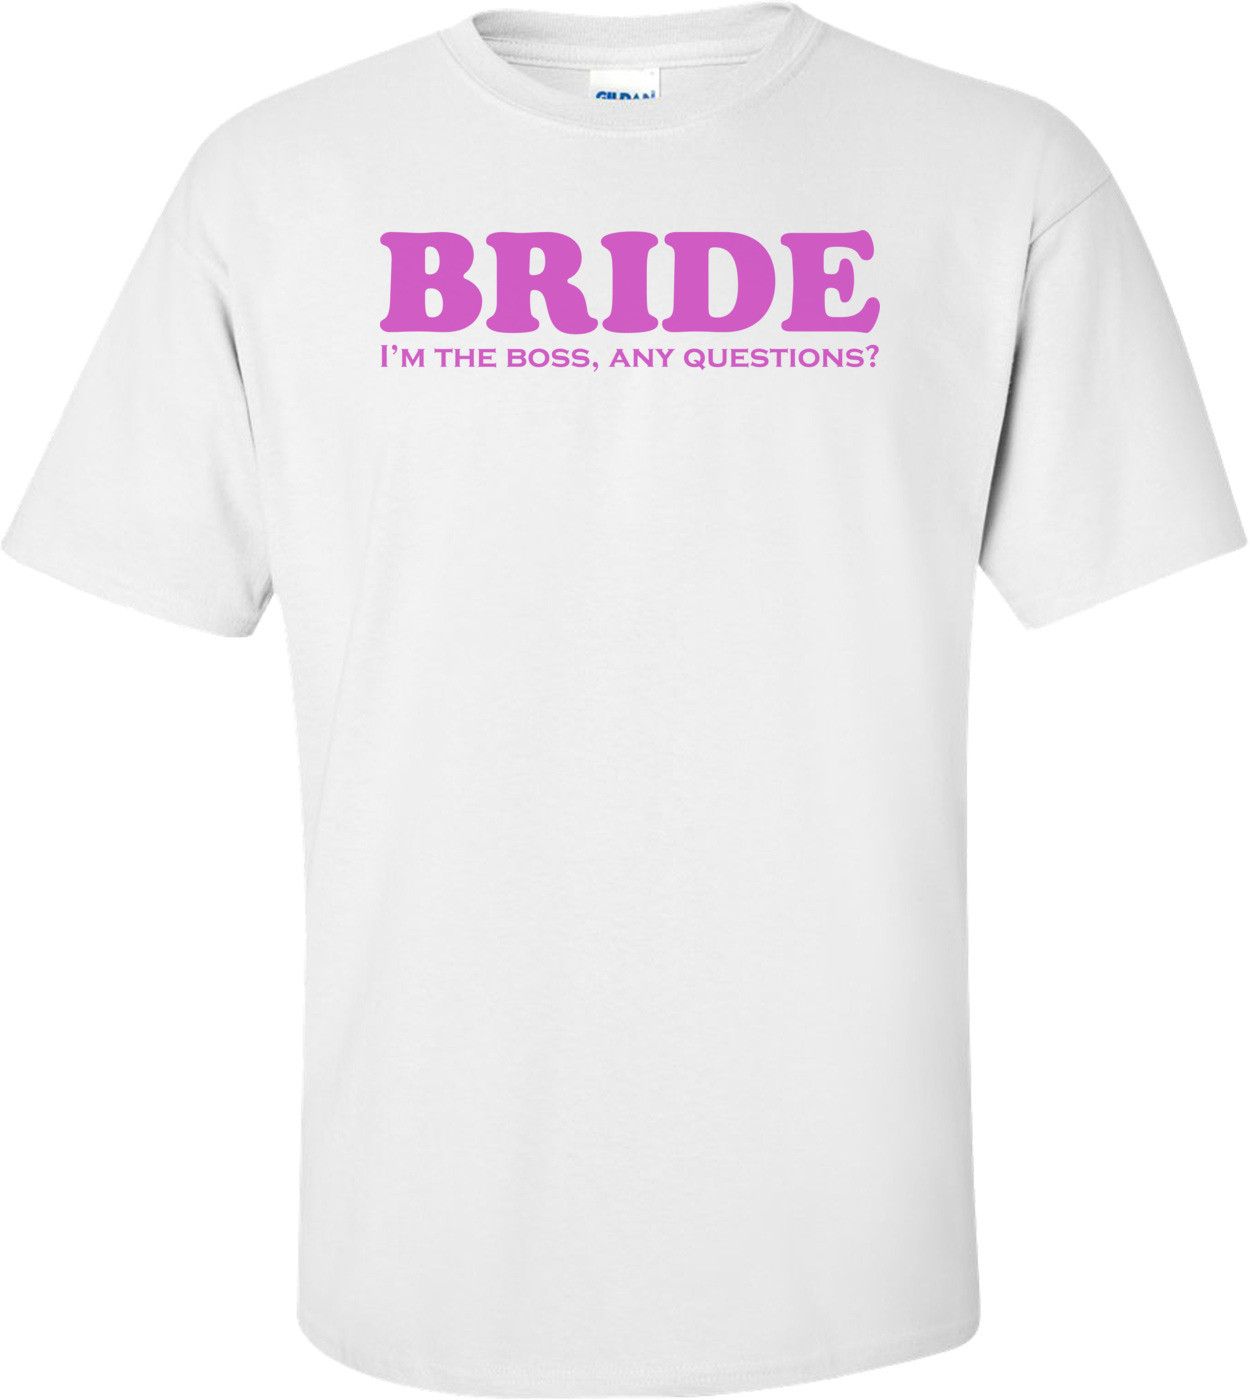 Bride, I'm The Boss Shirt